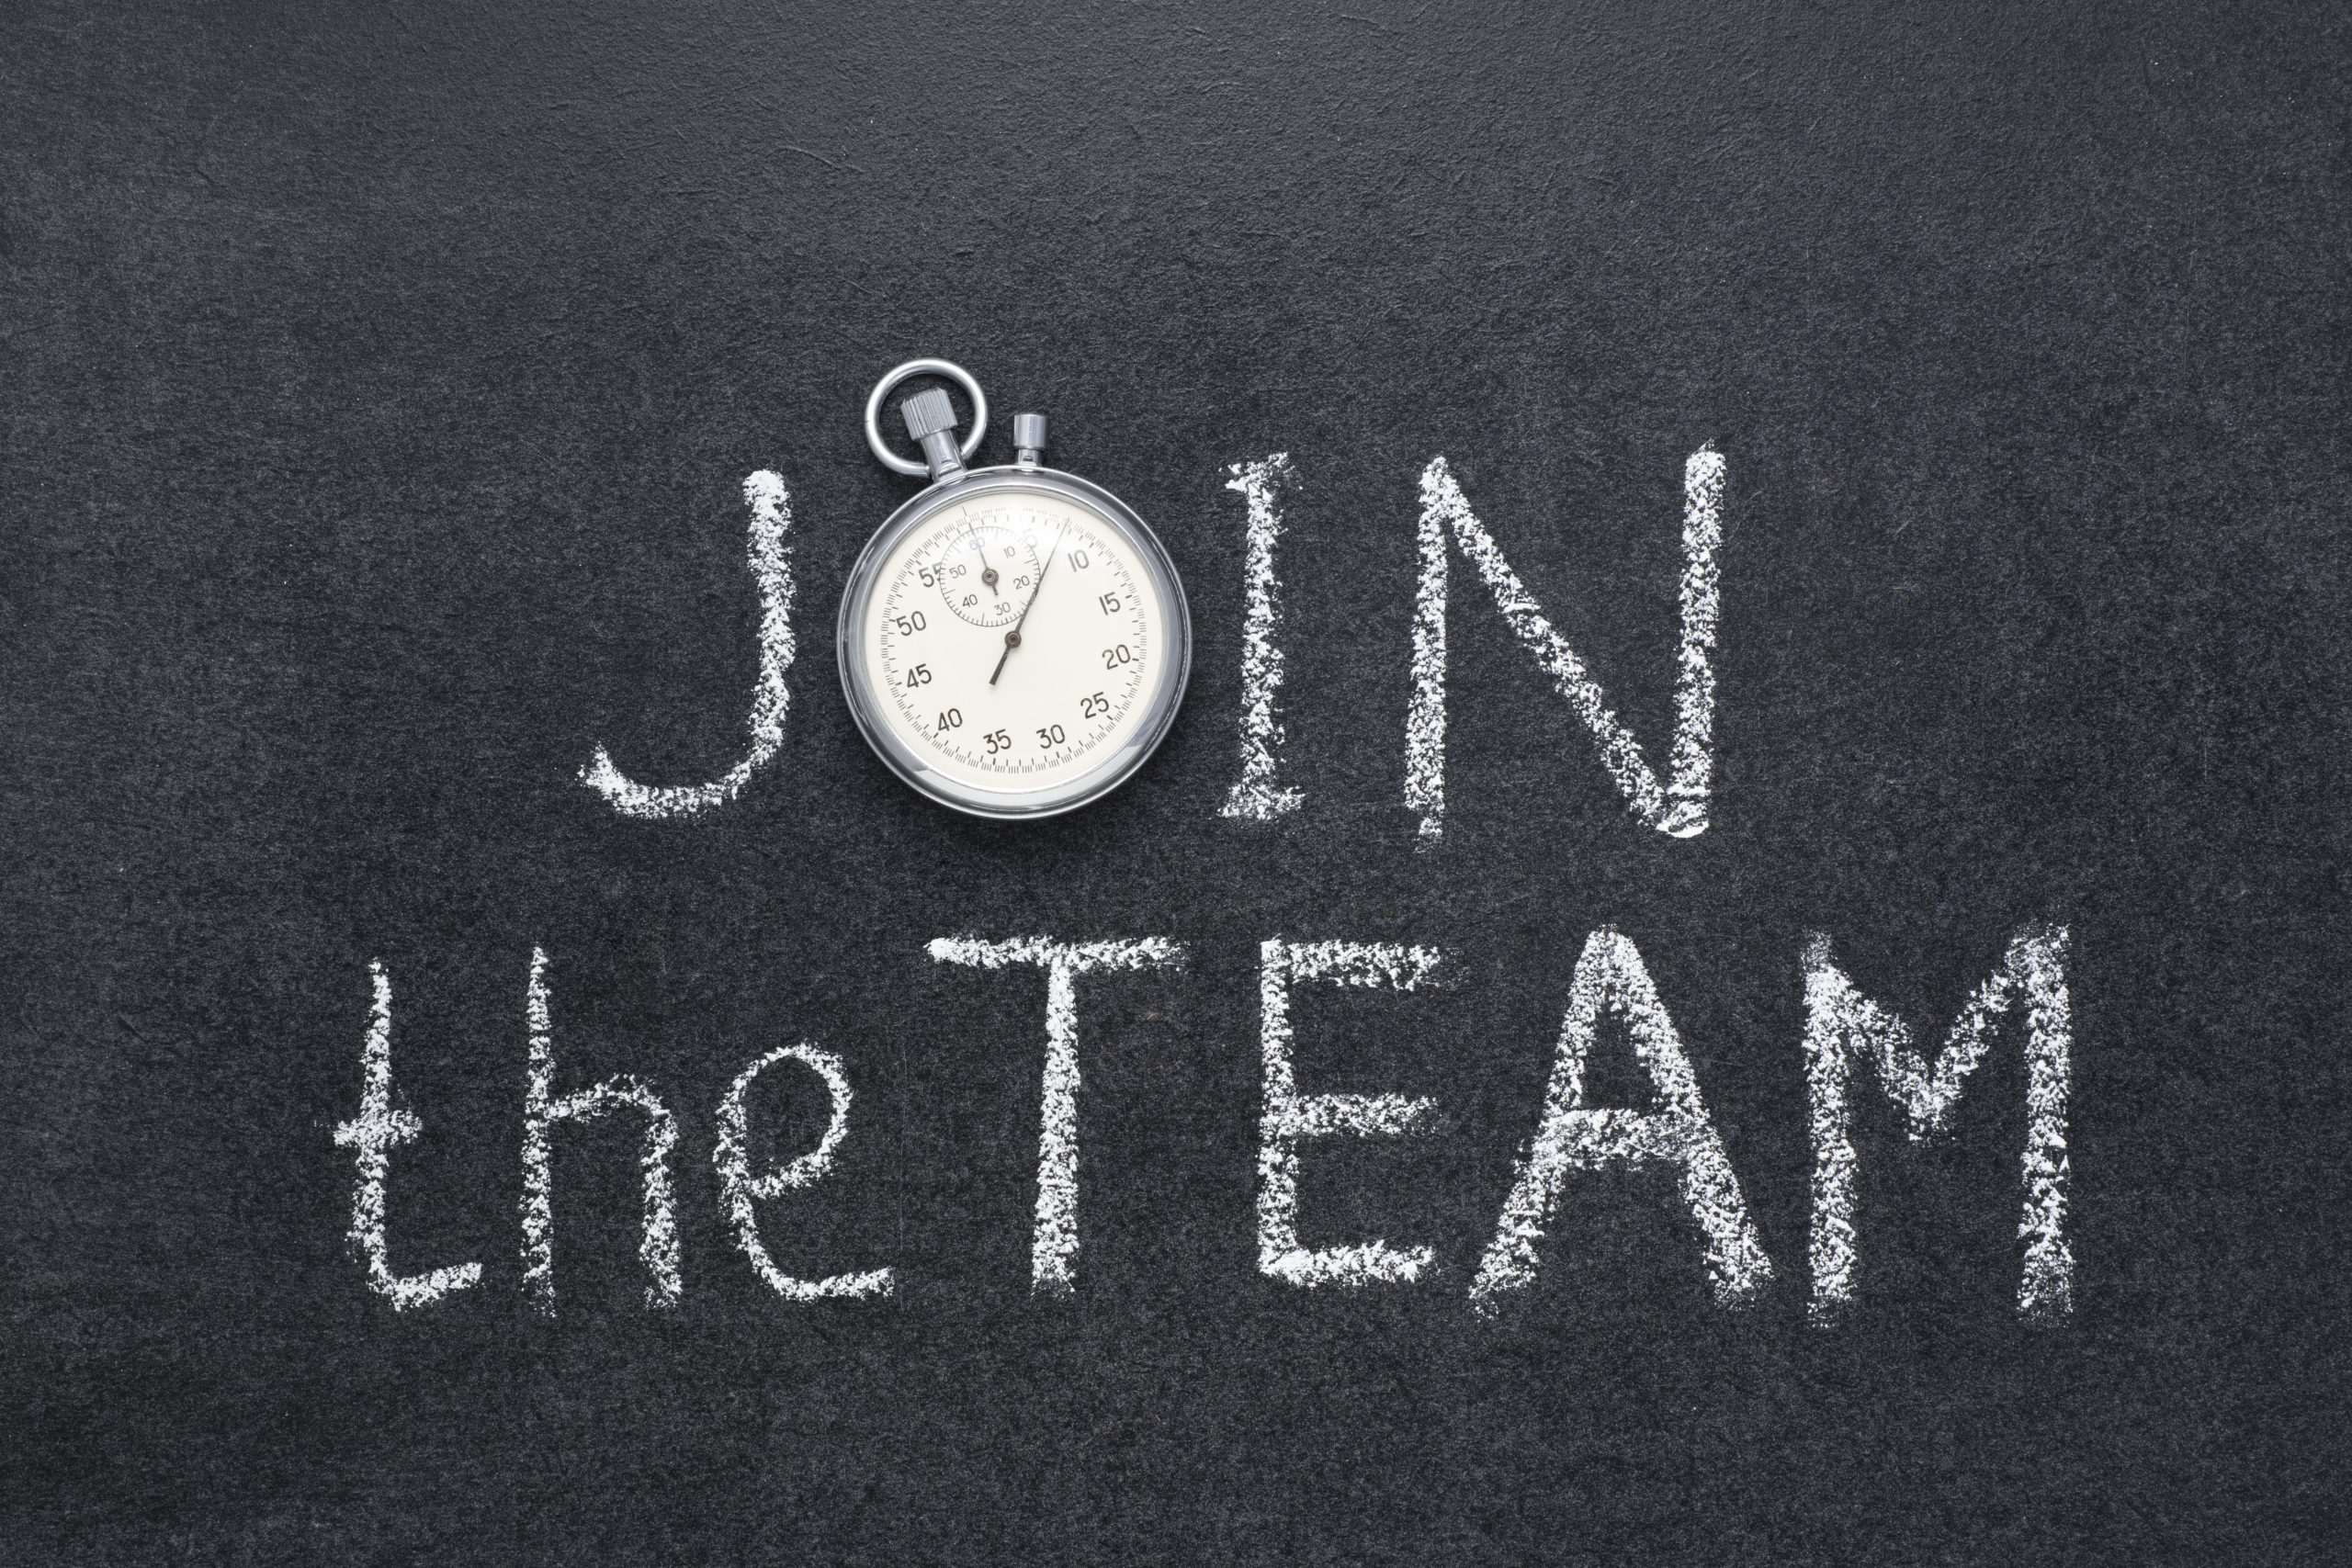 join the team phrase handwritten on chalkboard with vintage precise stopwatch used instead of O